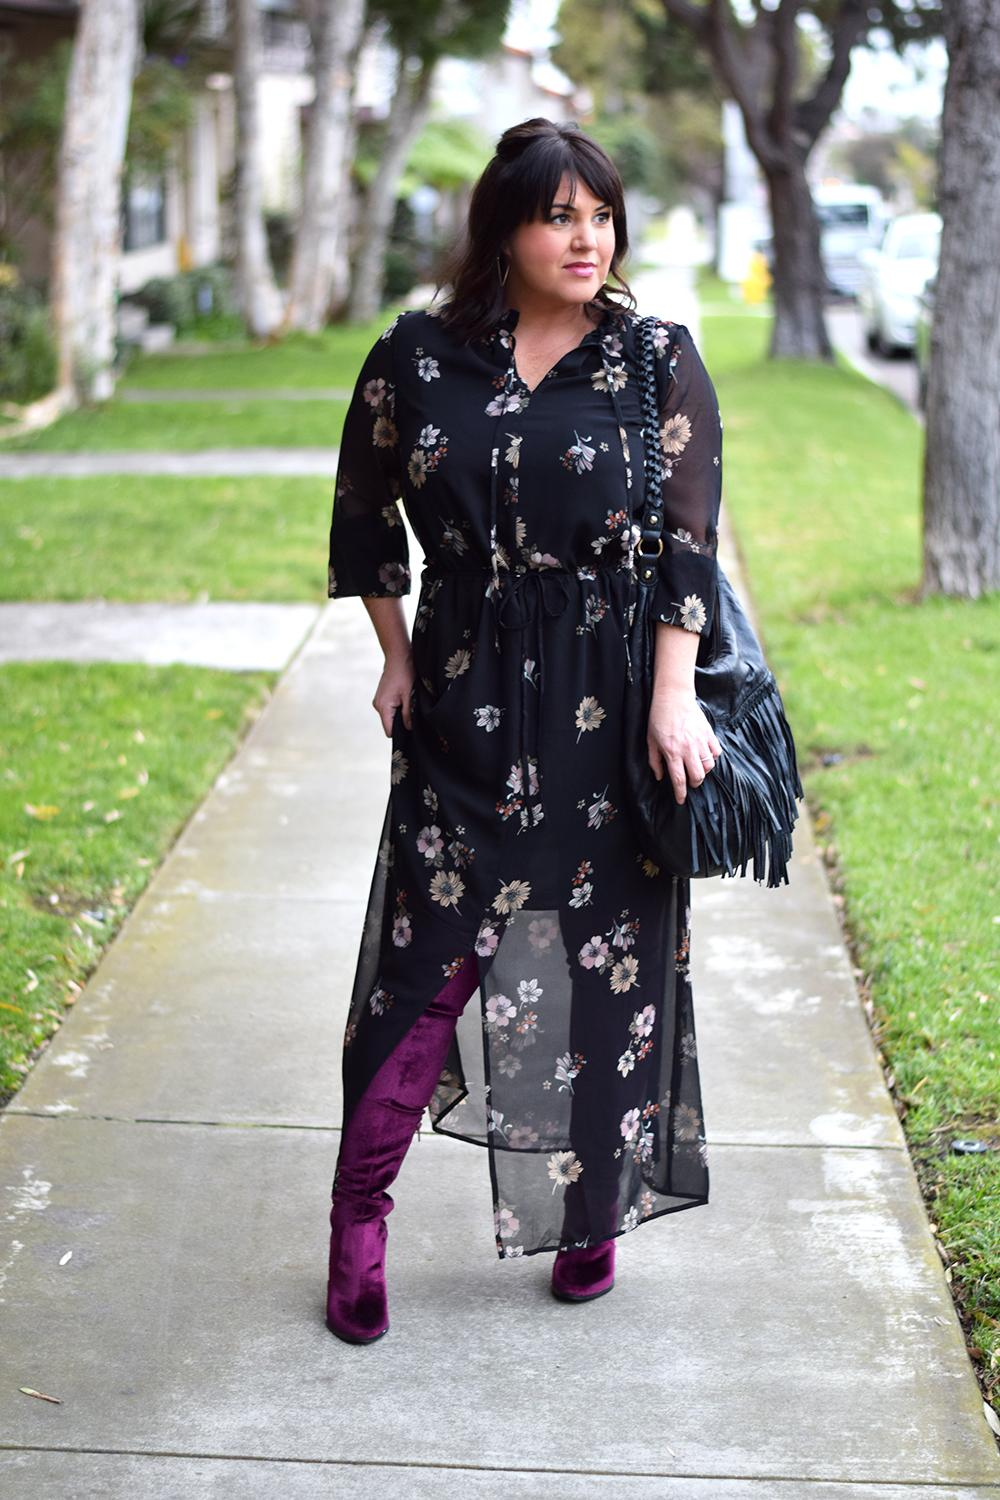 Womens-Printed-Midi-Dress-Outfit-Who-What-Wear-Barefoot-in-LA-Fashion-Blog-Style-Ideas-0065